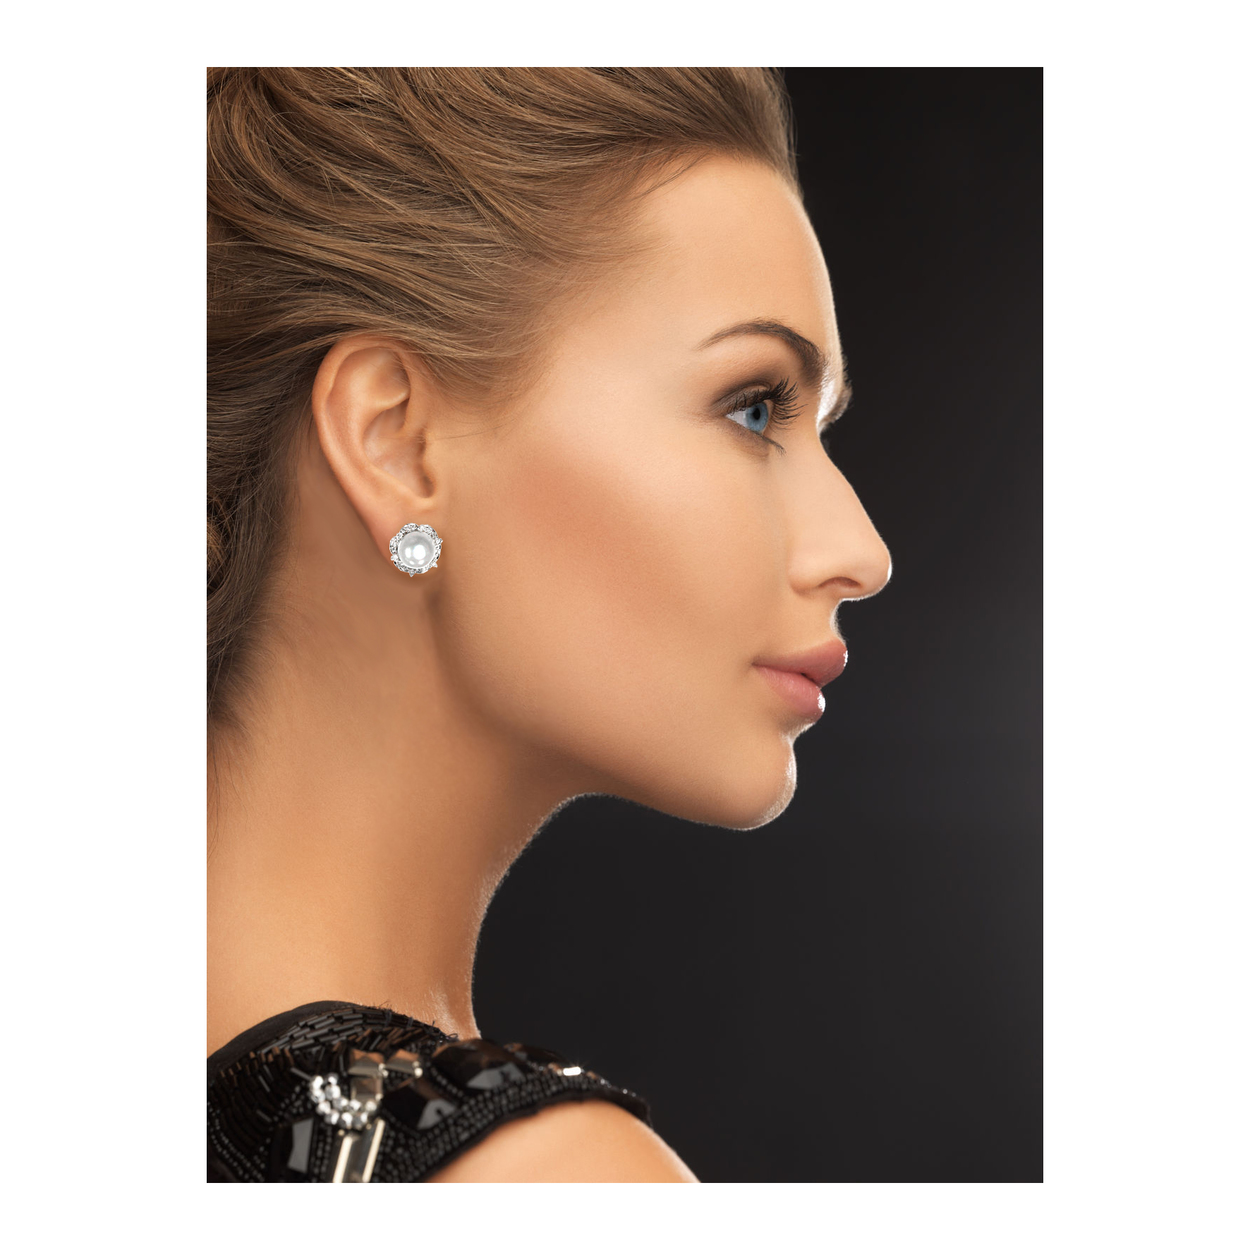 Solid-14K-White-Gold-0-80-cttw-Natural-Diamond-15MM-Cultured-Pearl-Stud-Earrings